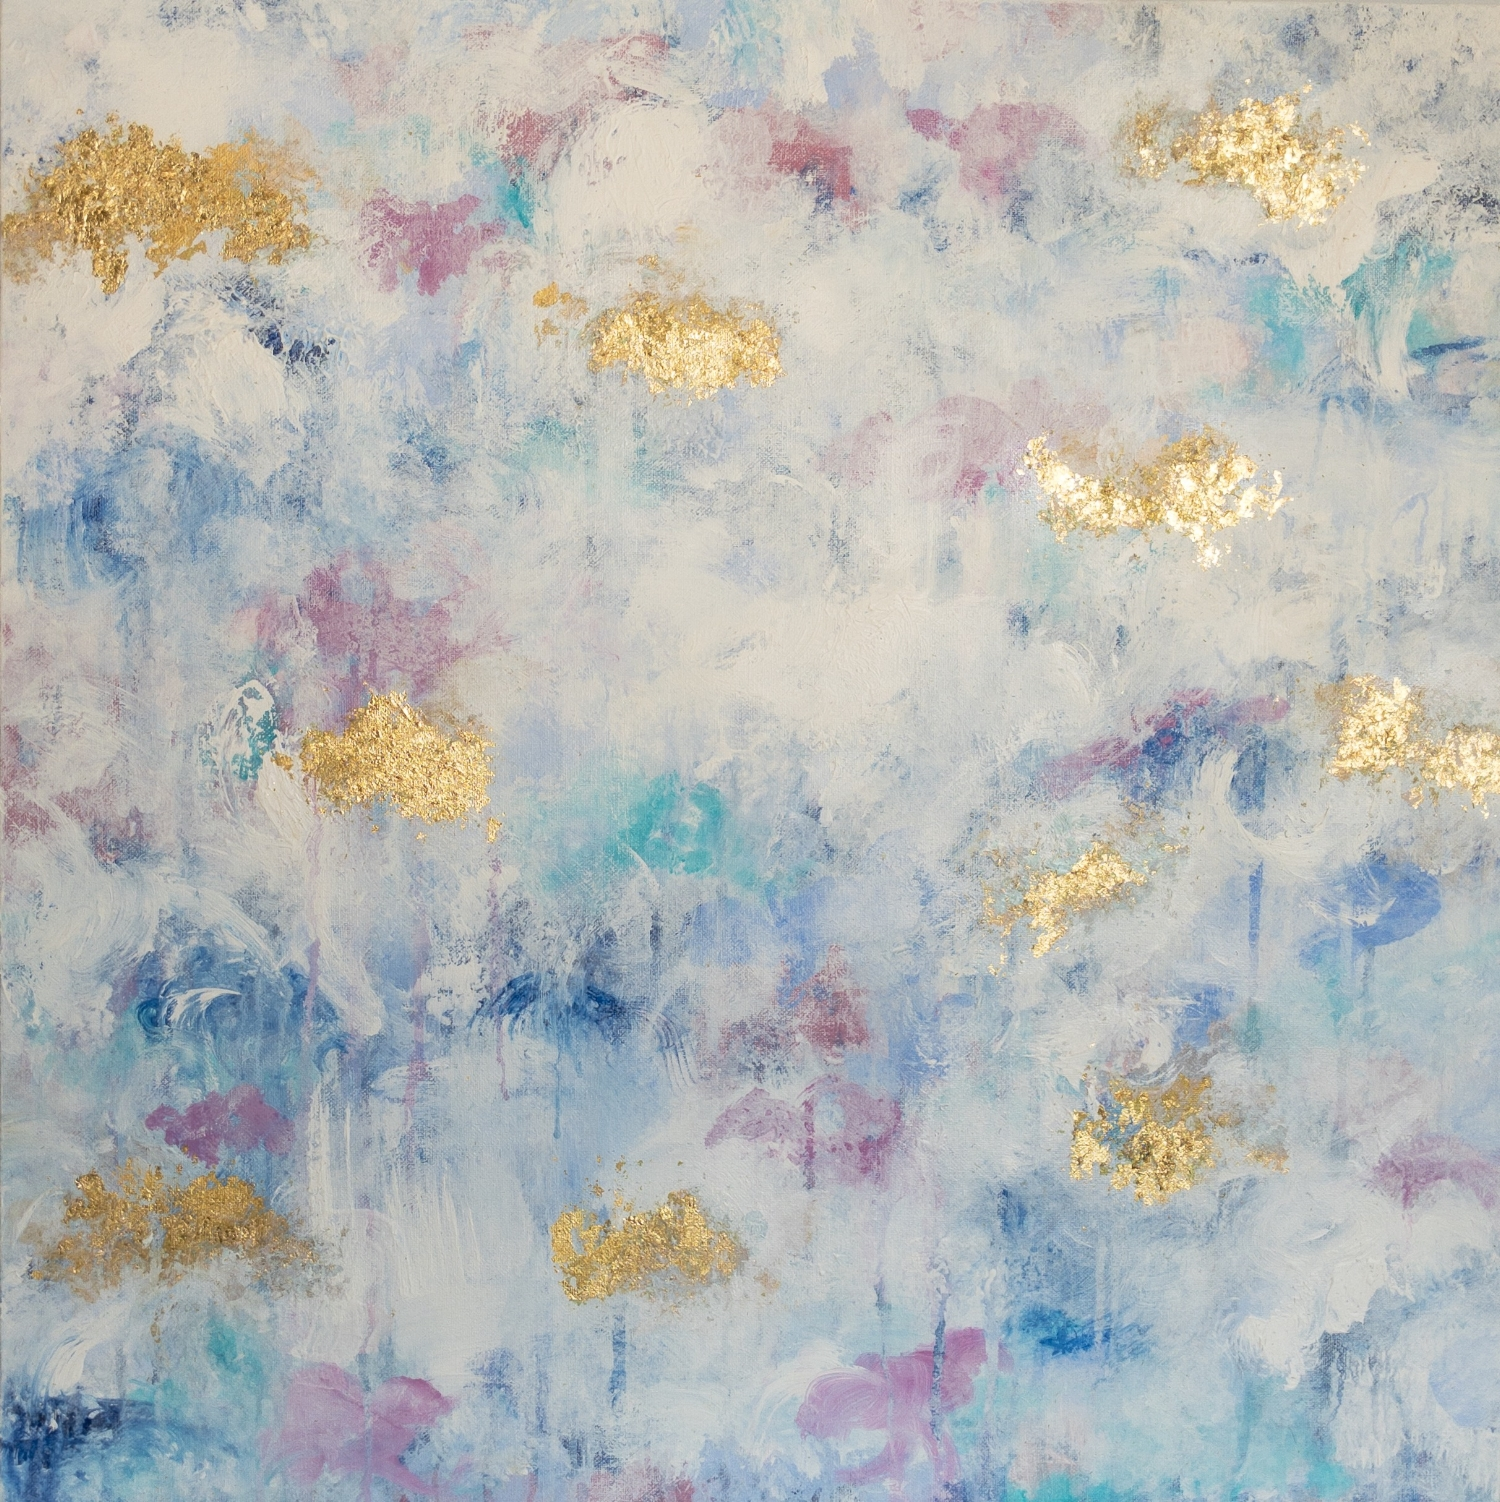 FLORAL 1  24x24  Acrylic and applied gold leaf on canvas